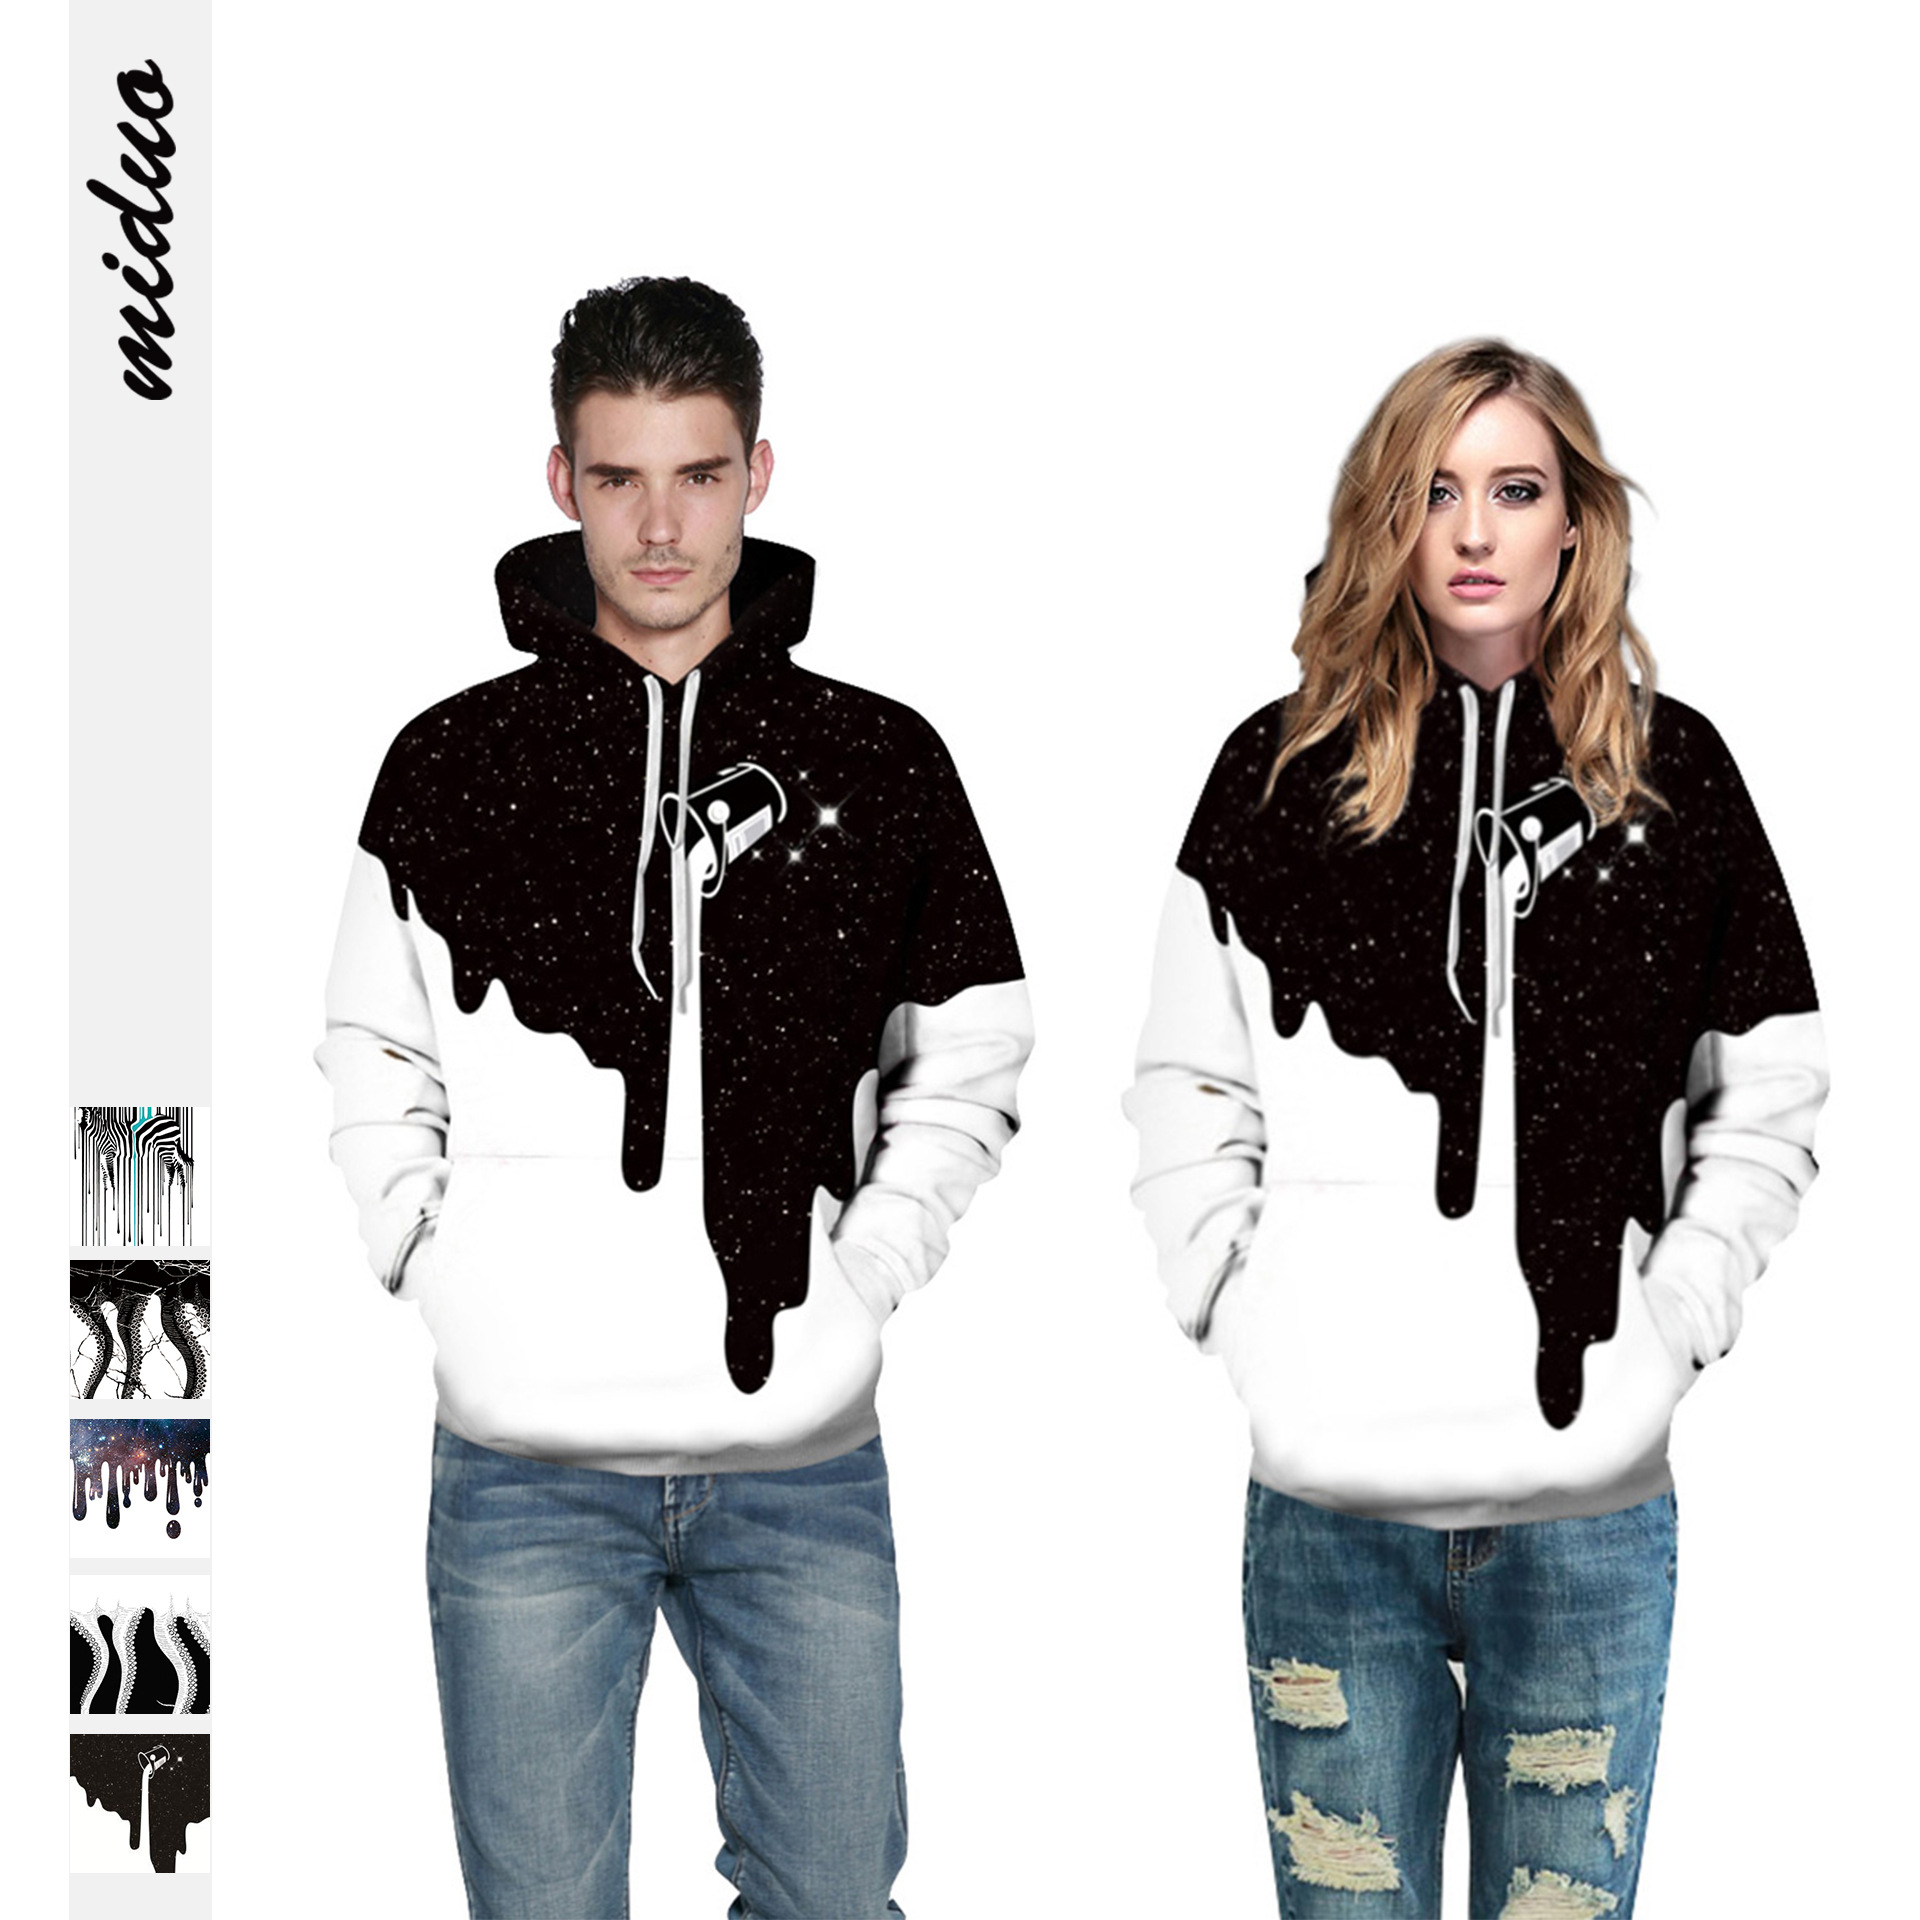 Realistic Hooded Sweatshirt for Couple 2019 Oversize Casual Leisure Pullovers Unisex Men Women Winter Hoodies Outwear for Lovers